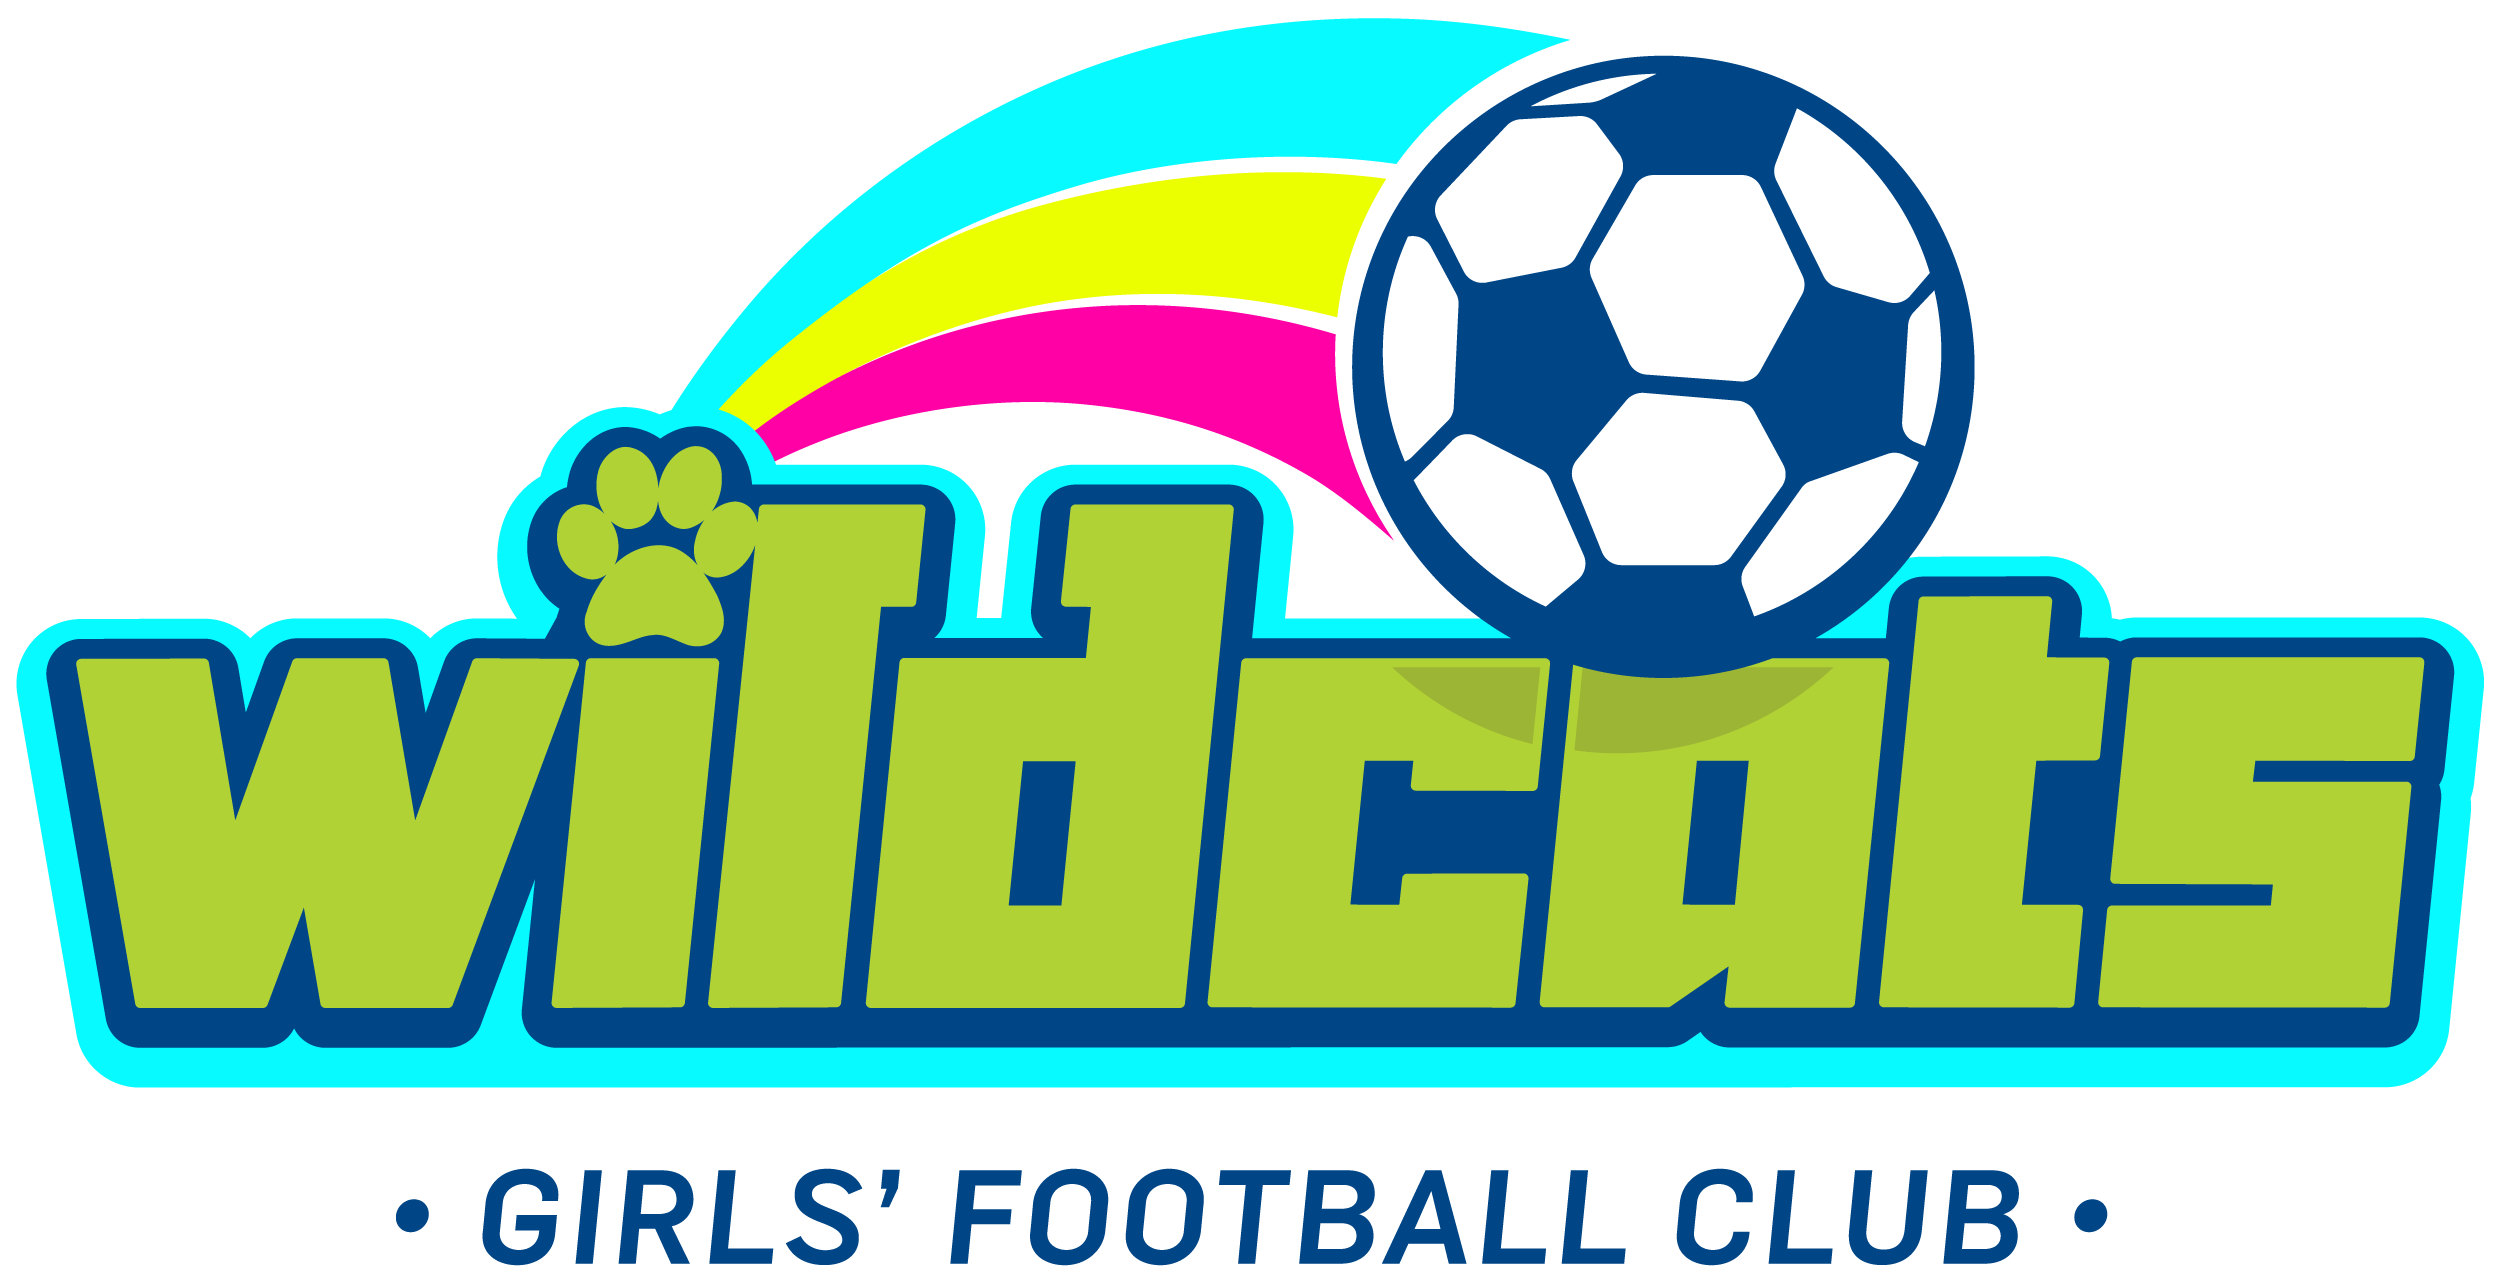 FA SSE Wildcats Girls' Football Club comes to Ruislip Rangers